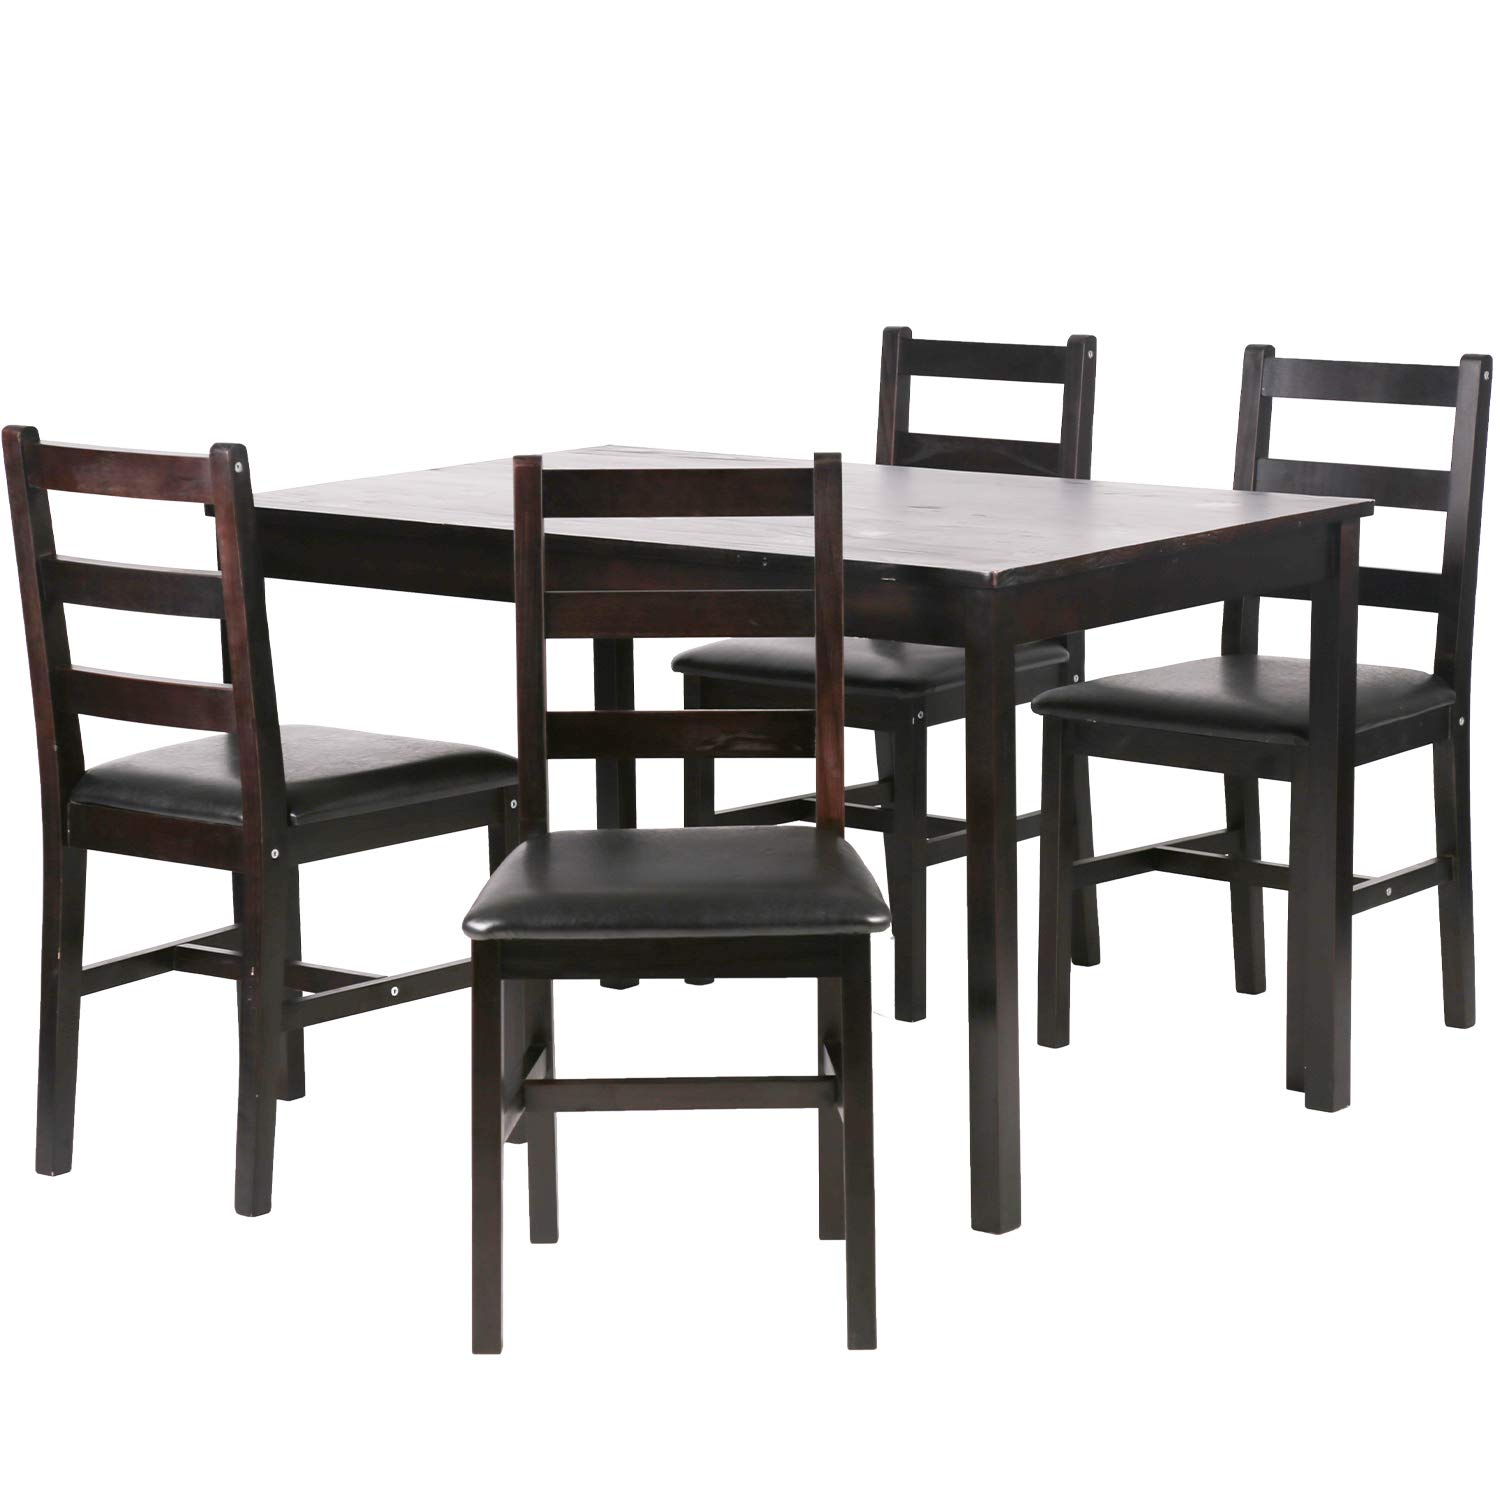 Phenomenal Fdw Dining Table Set Kitchen Dining Table Set Wood Table And Chairs Set Kitchen Table And Chairs For 4 Personbrown Download Free Architecture Designs Rallybritishbridgeorg